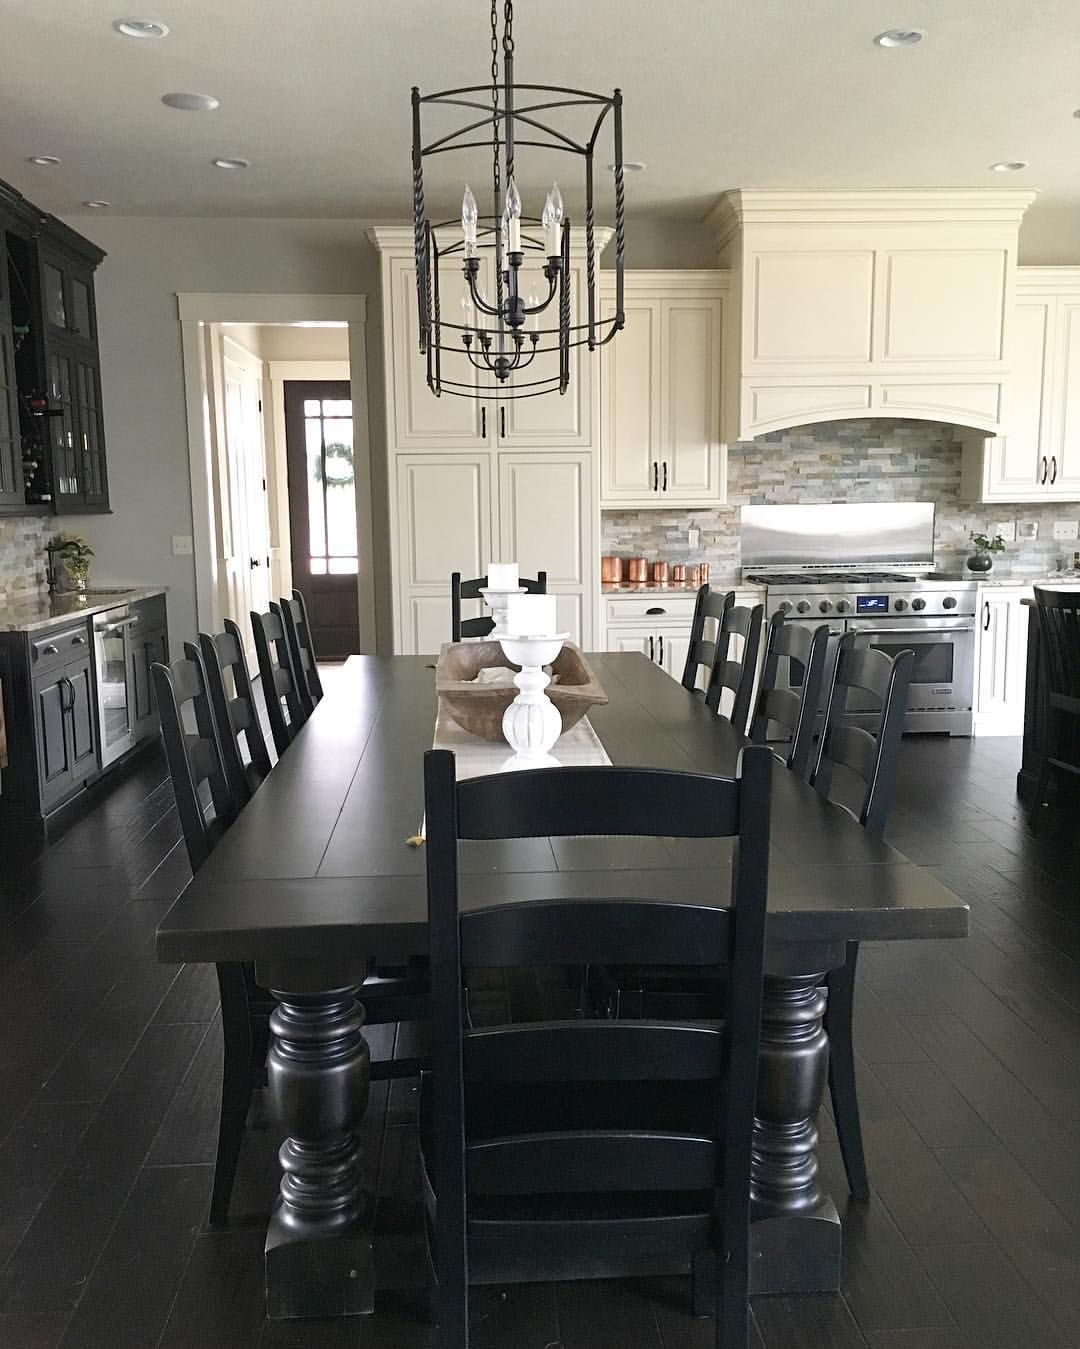 Black and white modern farmhouse kitchen with long dining table ...